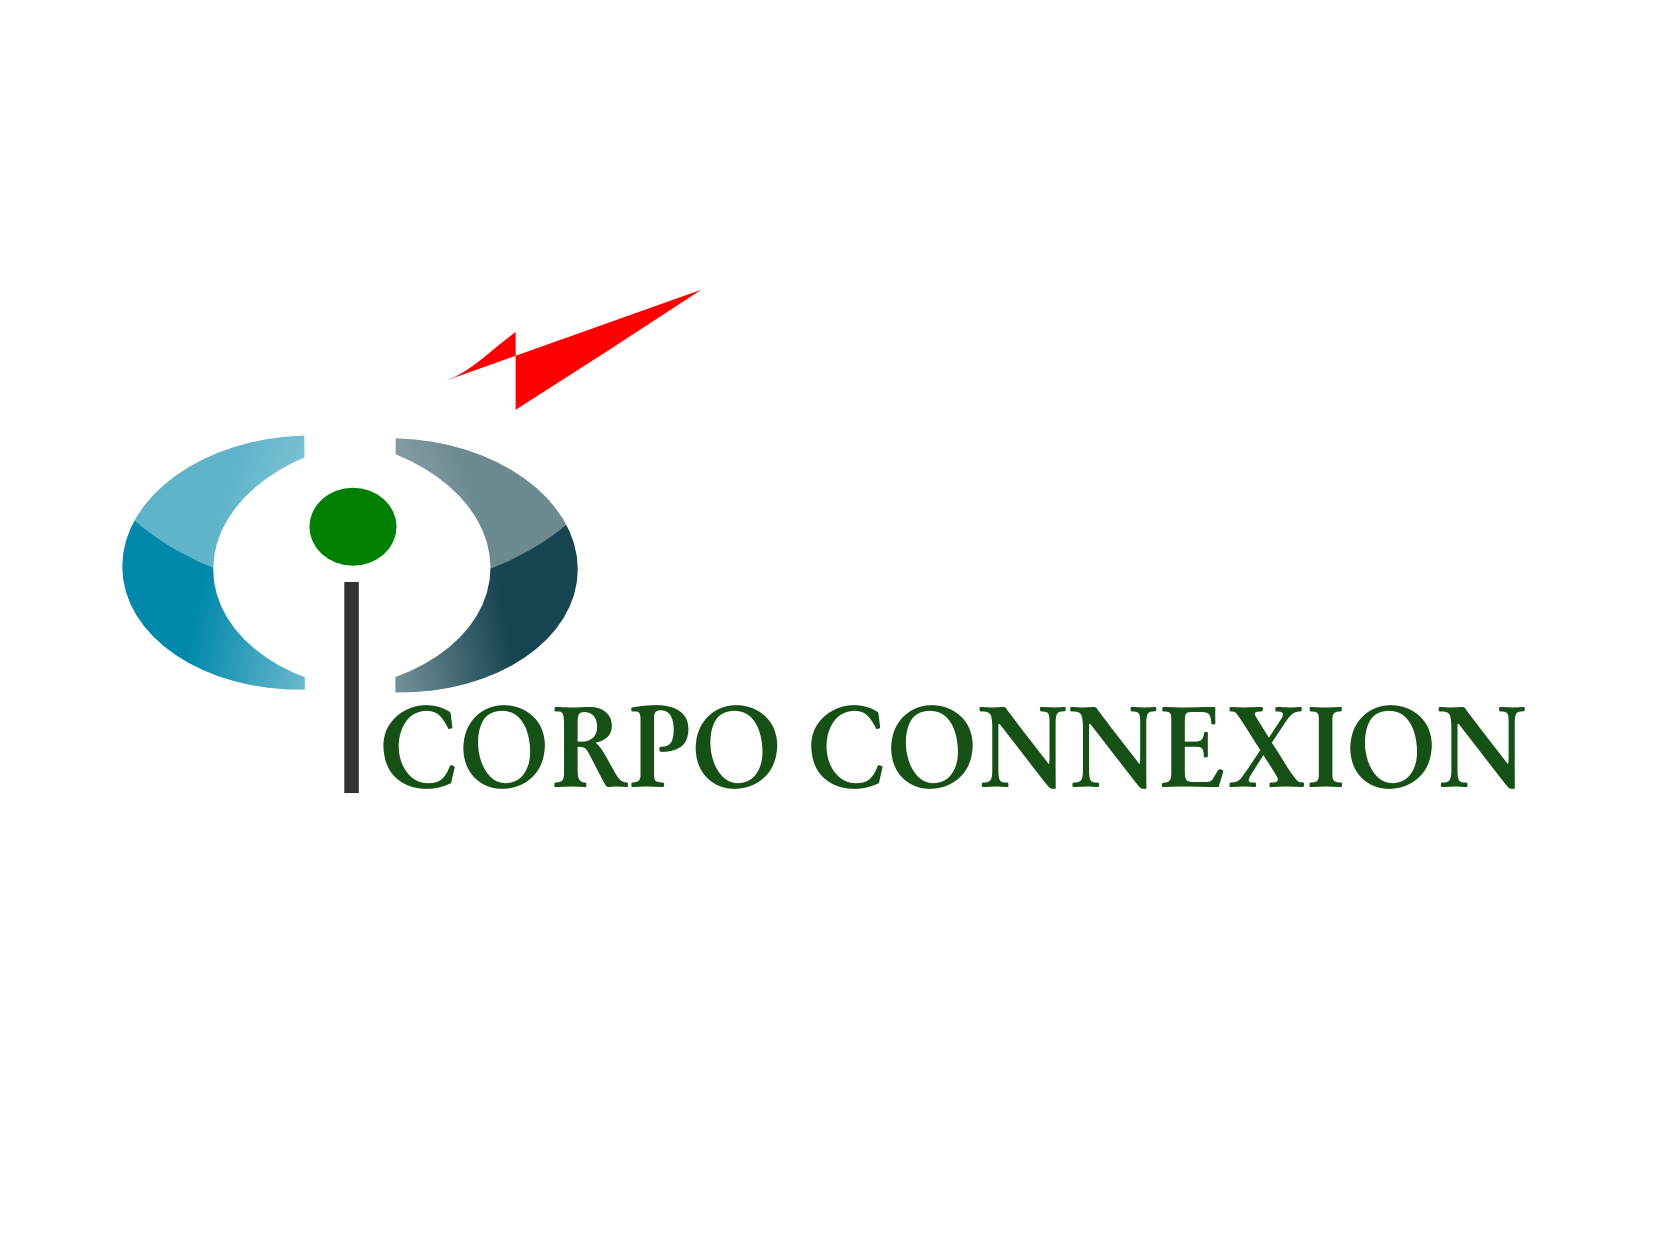 Logo Design by Joseph calunsag Cagaanan - Entry No. 116 in the Logo Design Contest Fun Logo Design for Corpo Connexion.